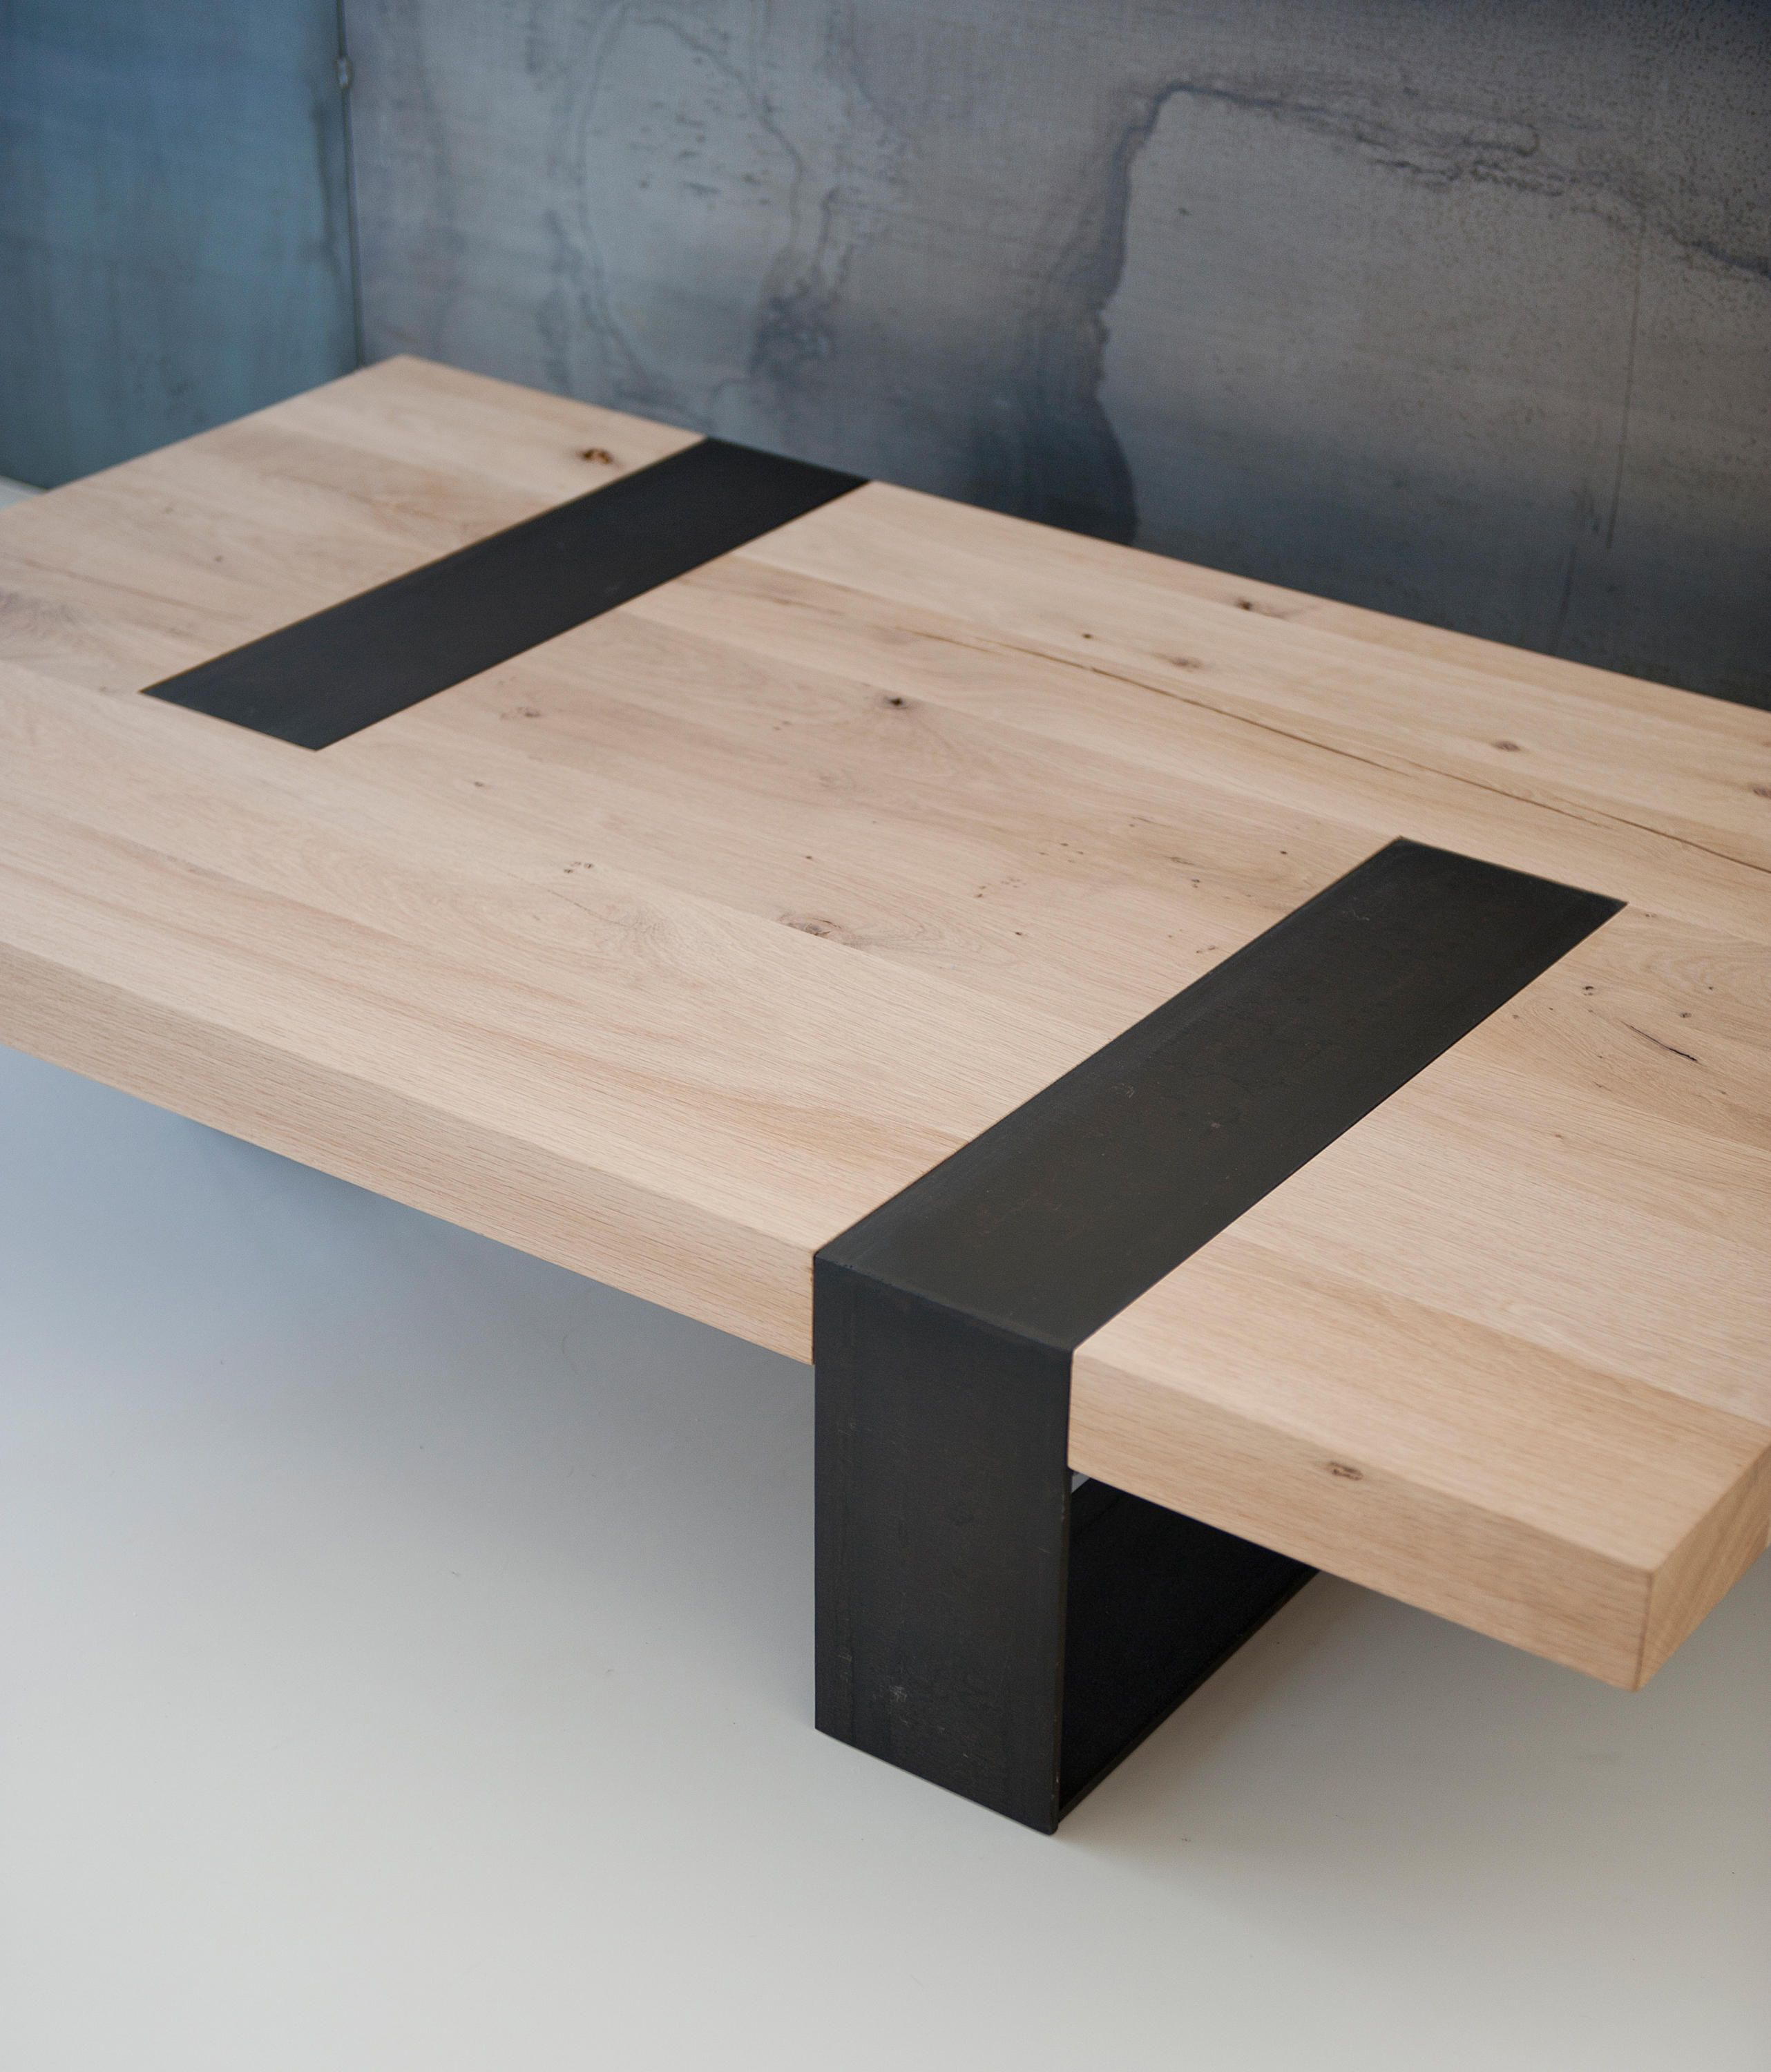 All about clip coffee table by van rossum on architonic find all about clip coffee table by van rossum on architonic find pictures detailed information geotapseo Gallery